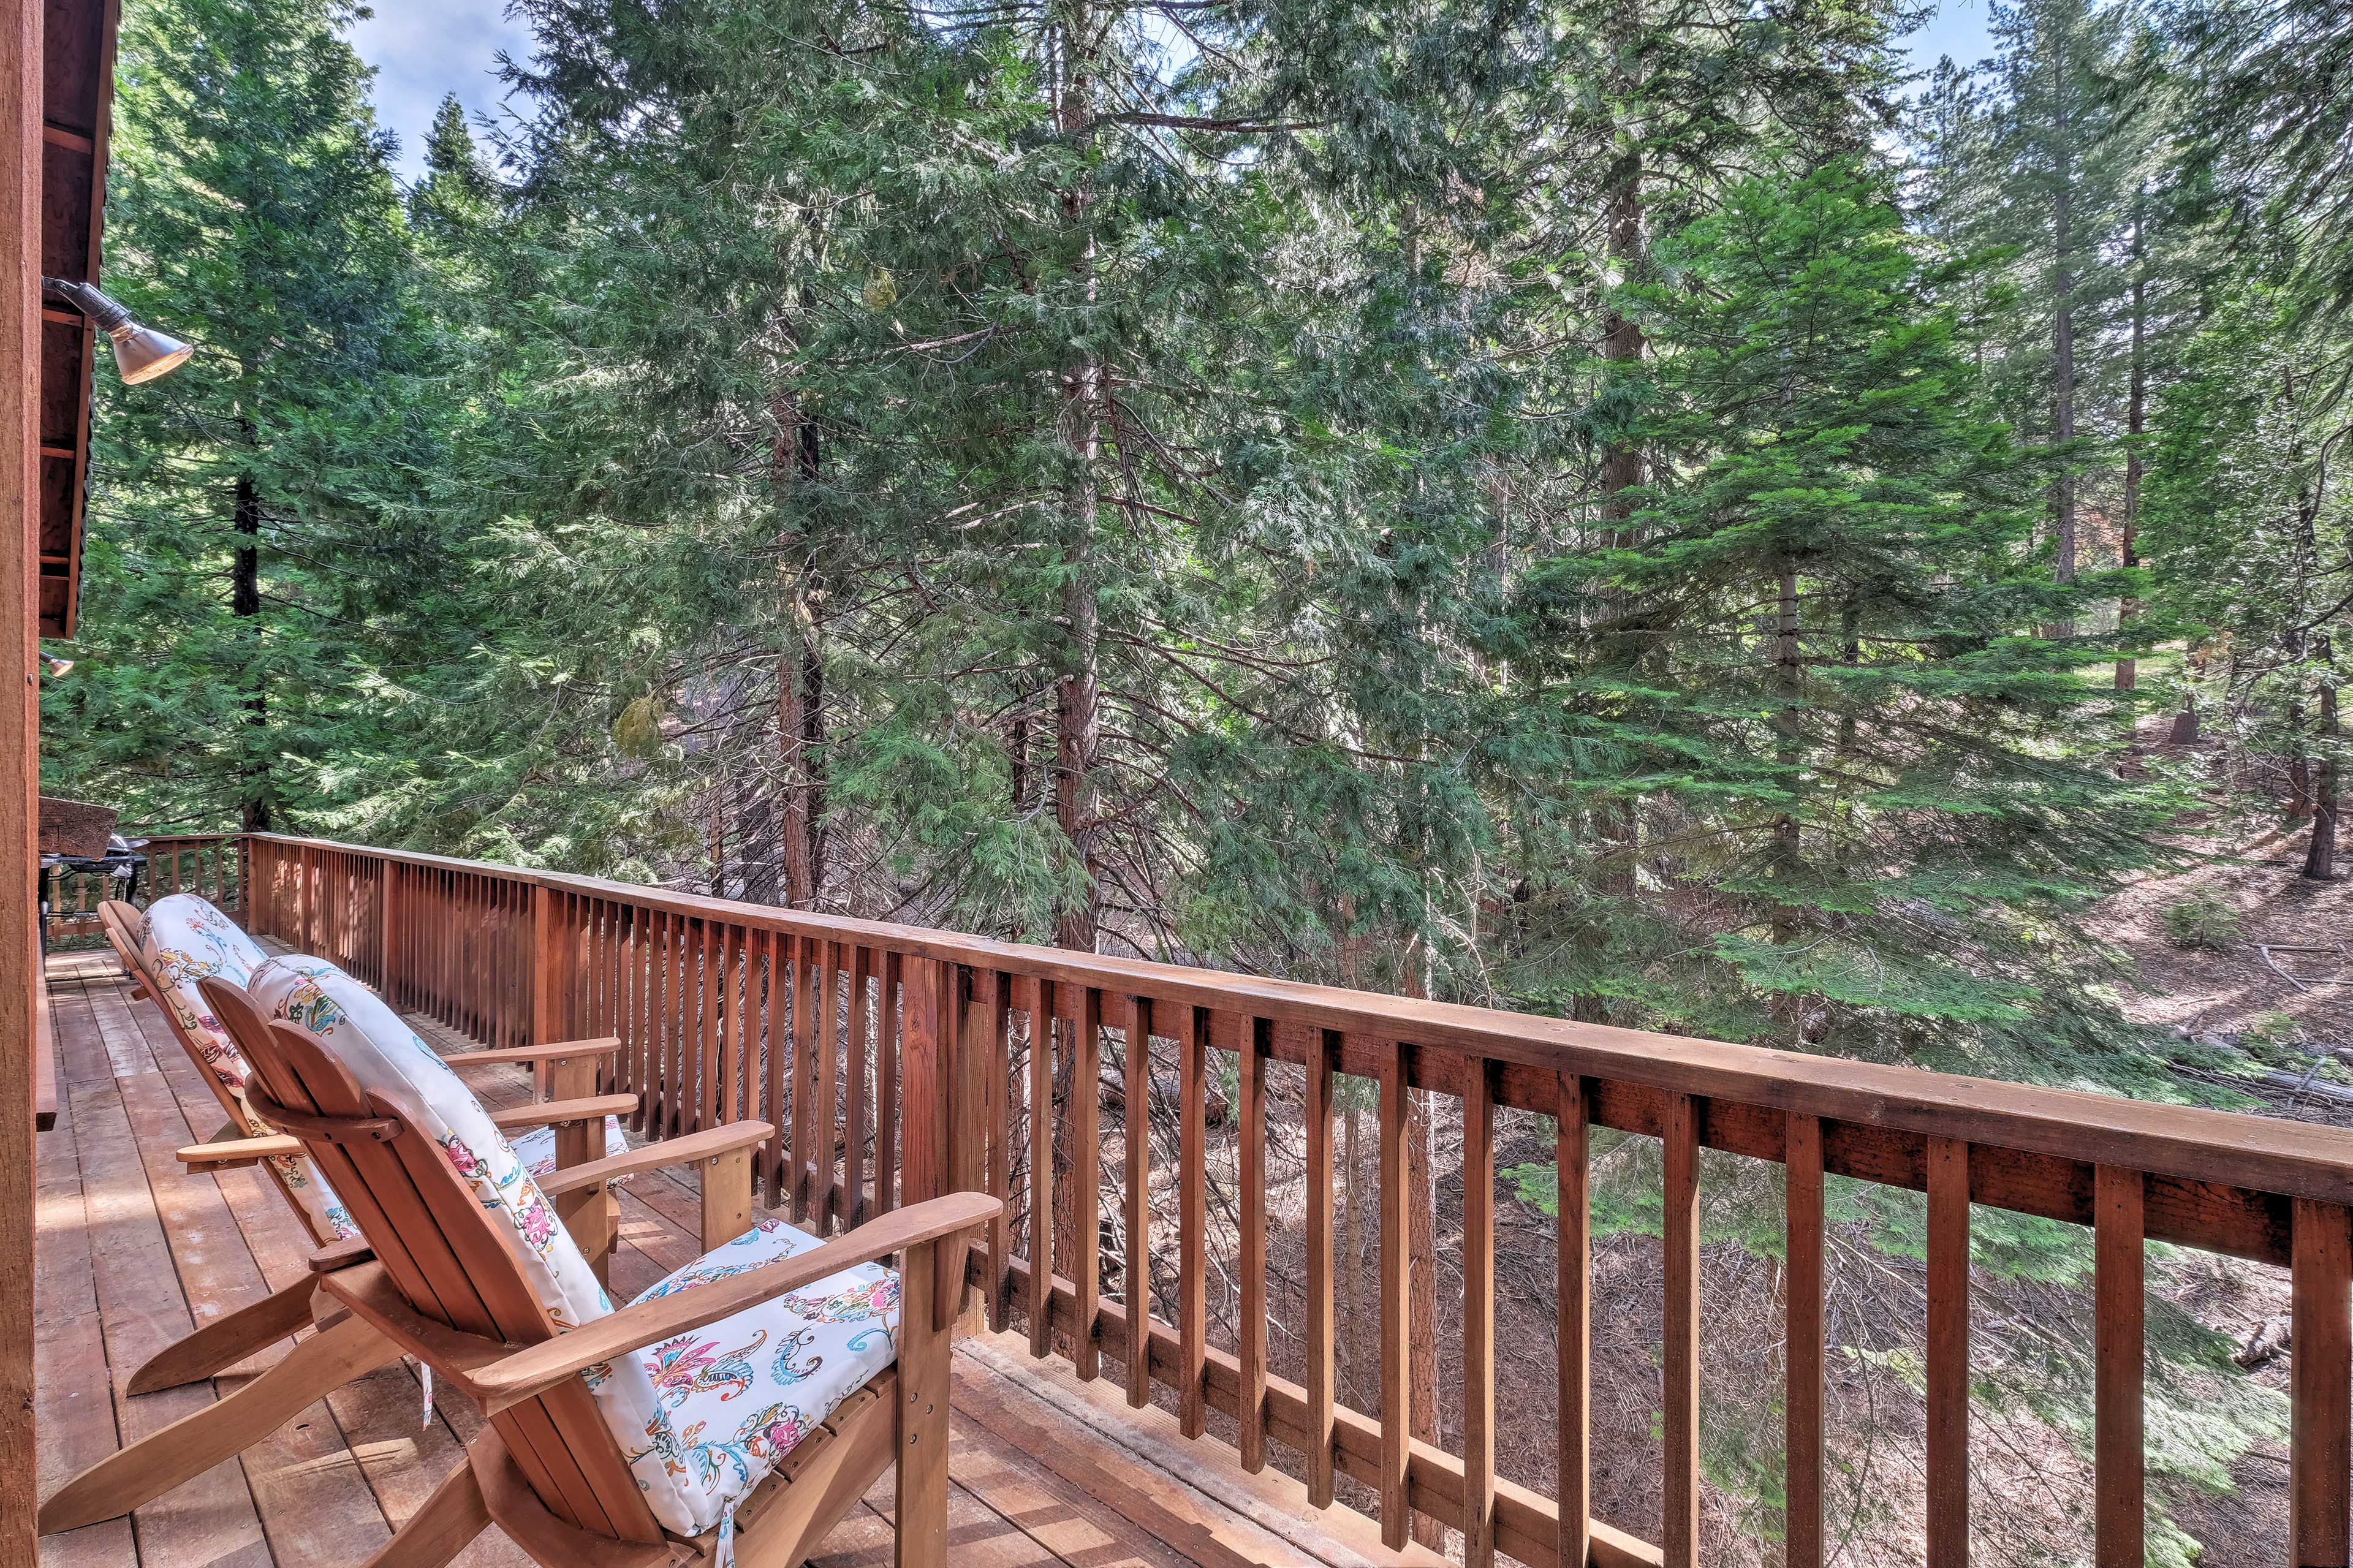 Sit back and relax in the High Sierra wilderness!